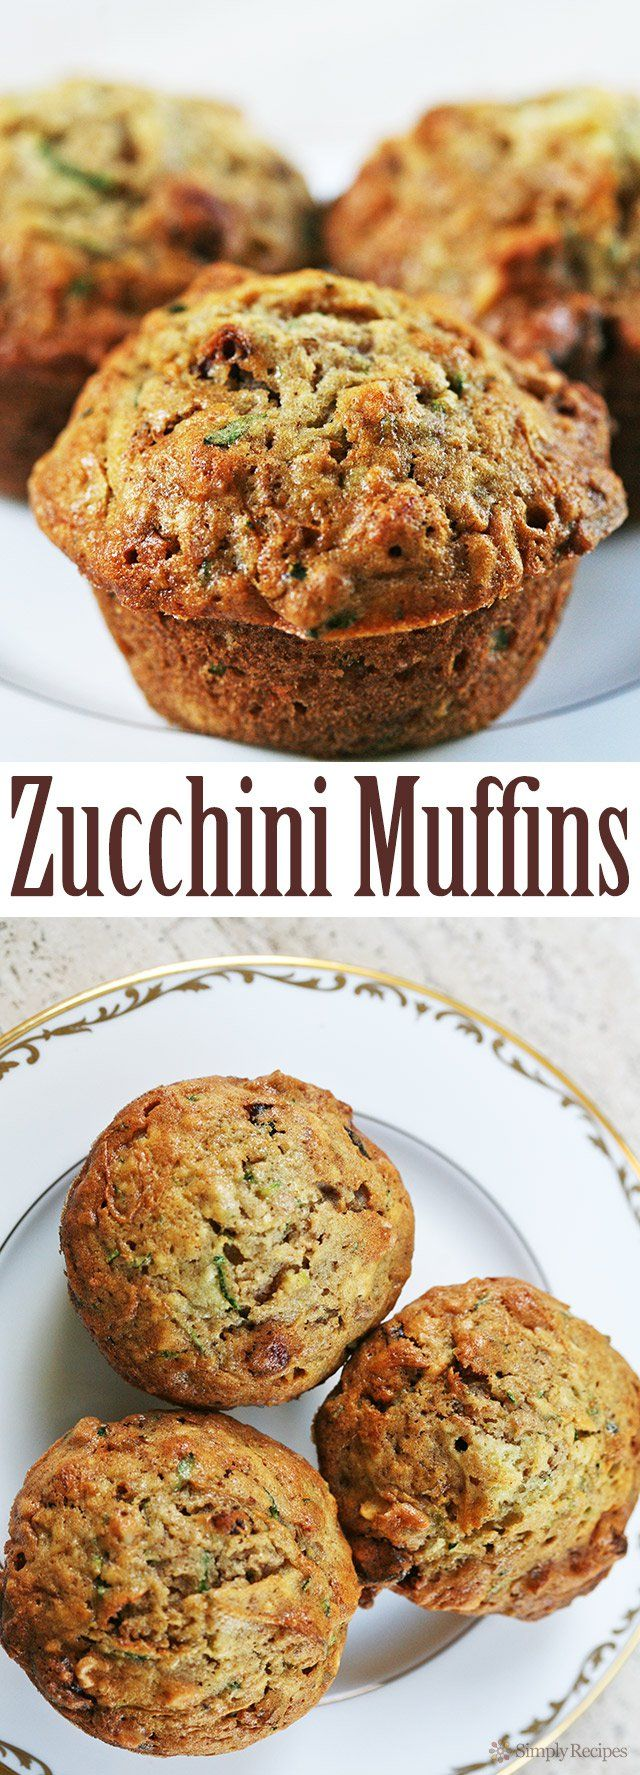 The BEST zucchini bread muffins EVER! Moist, sweet, packed with shredded zucchini, walnuts, dried cranberries, and spiced with vanilla, cinnamon and nutmeg. On SimplyRecipes.com